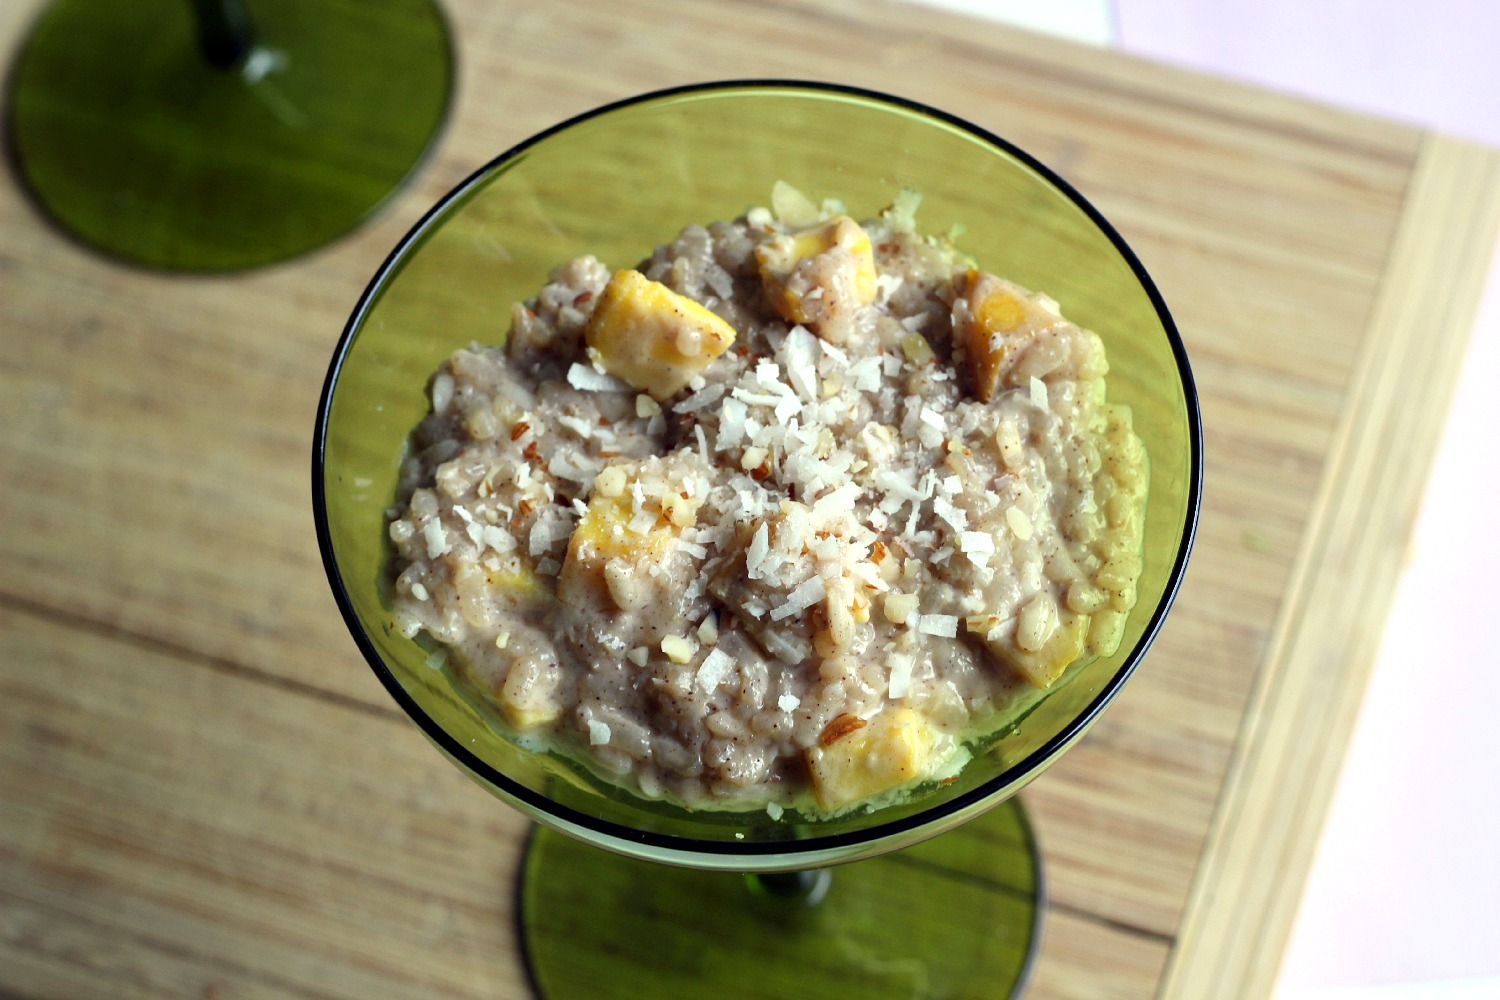 mango coconut rice pudding 3 4 cup arborio rice 1